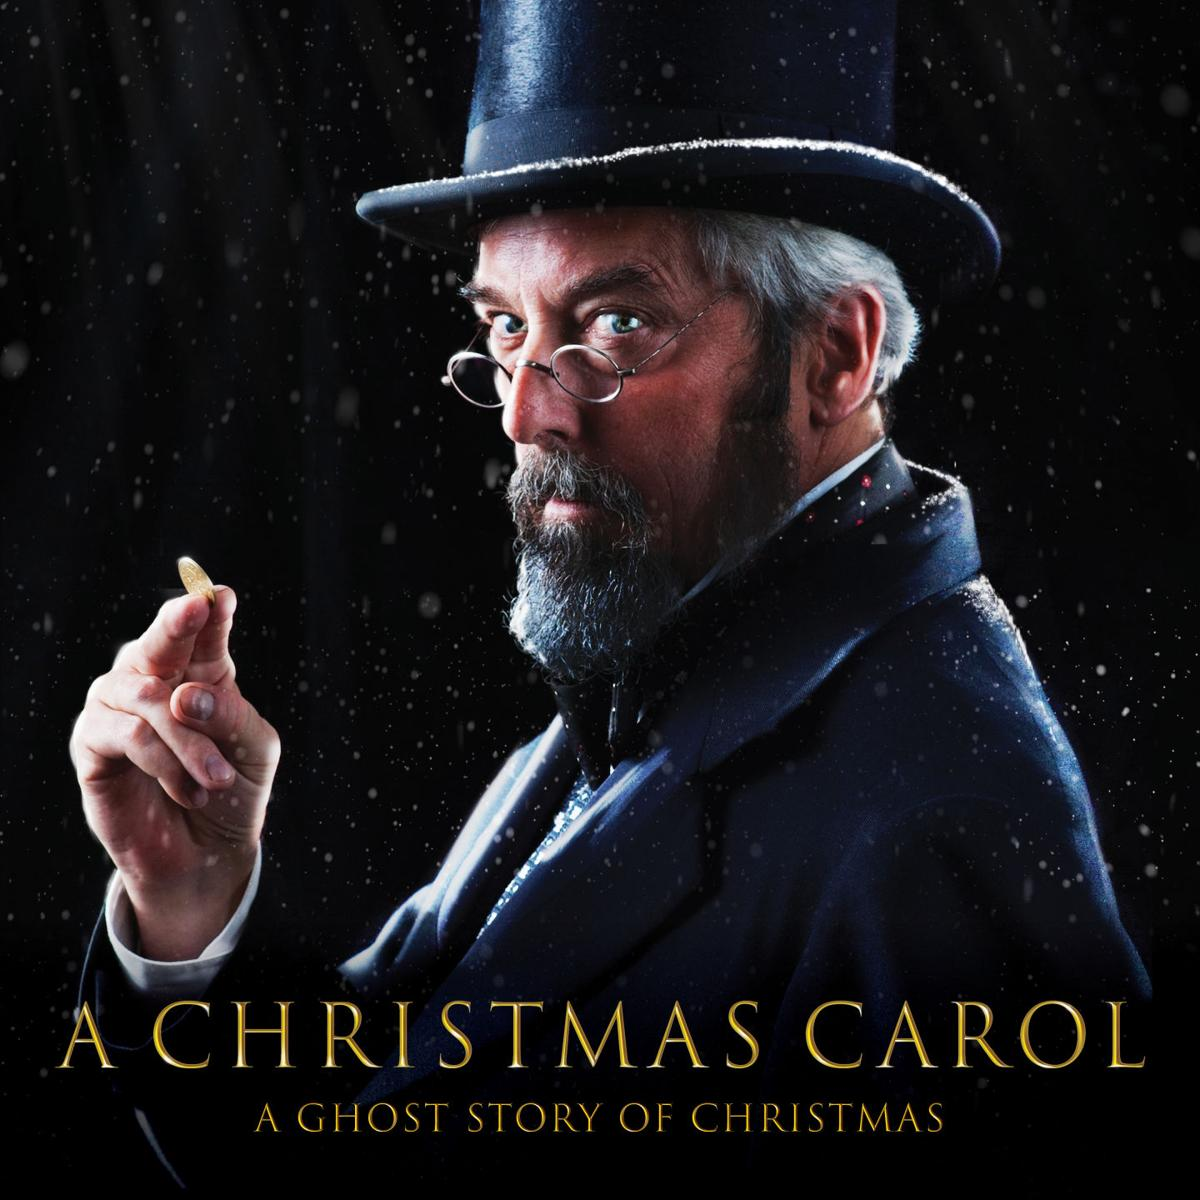 A Christmas Carol-A Ghost Story of Christmas